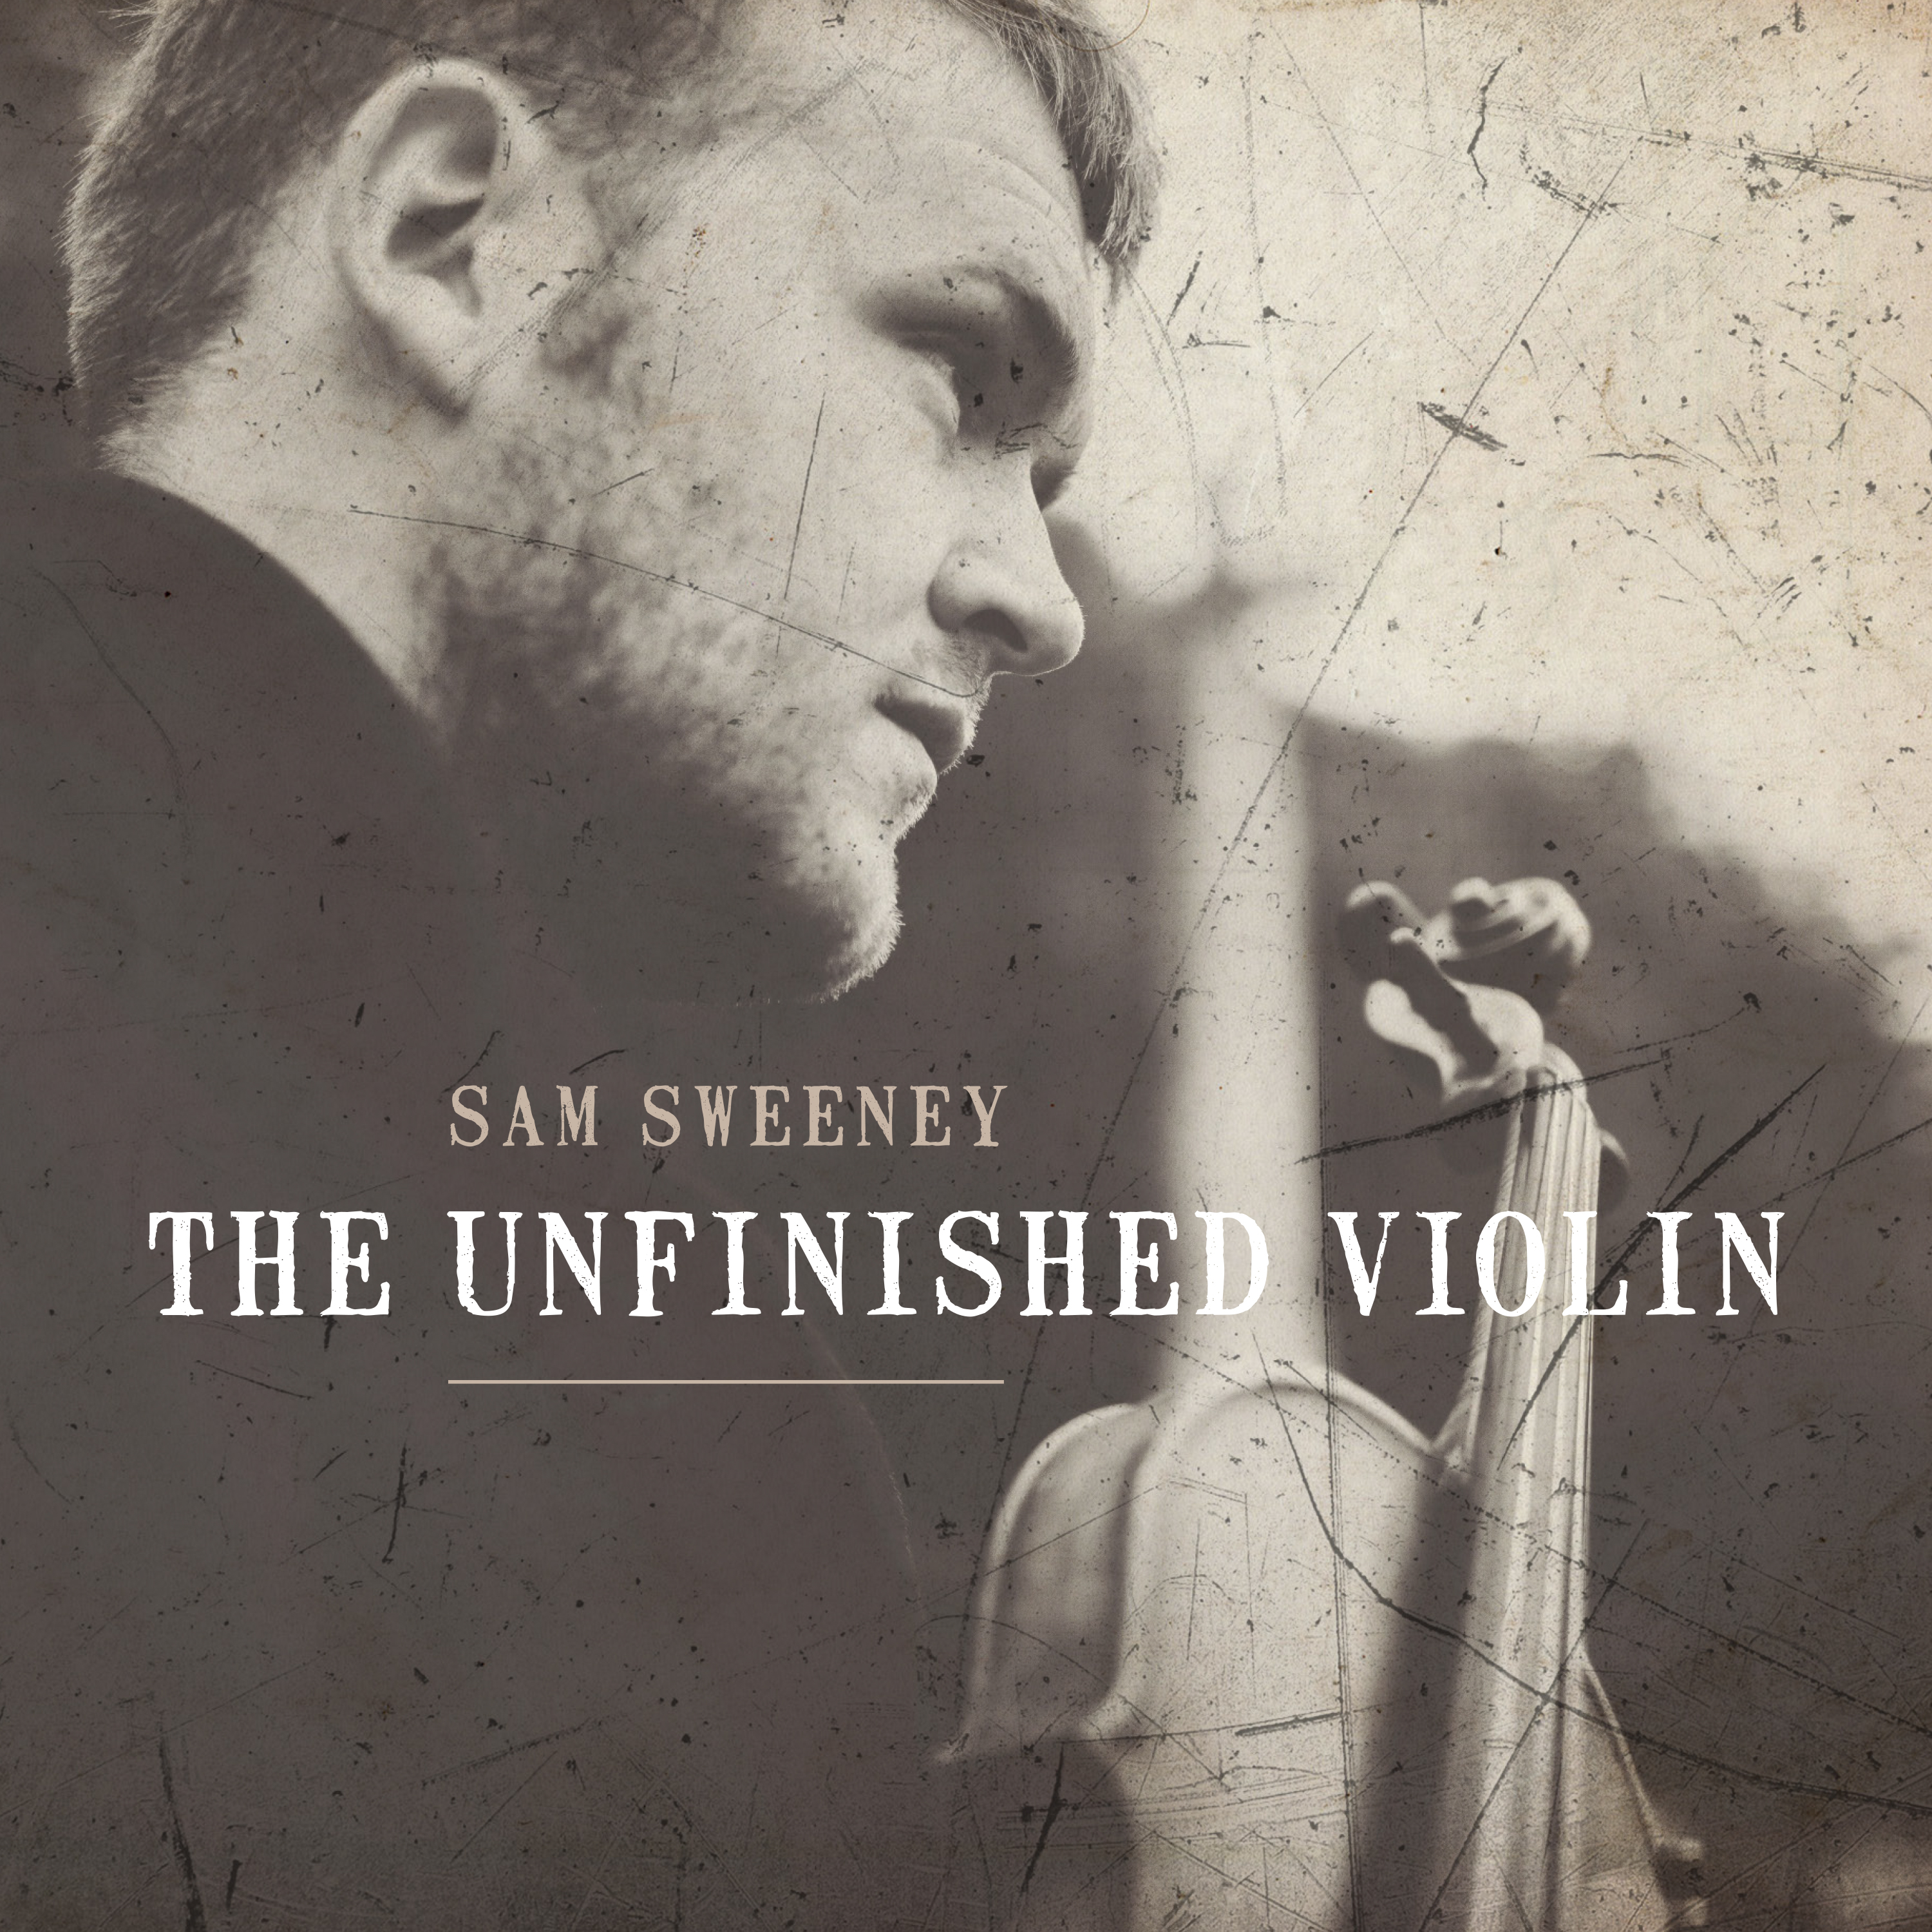 samsweeneyunfinisheviolin